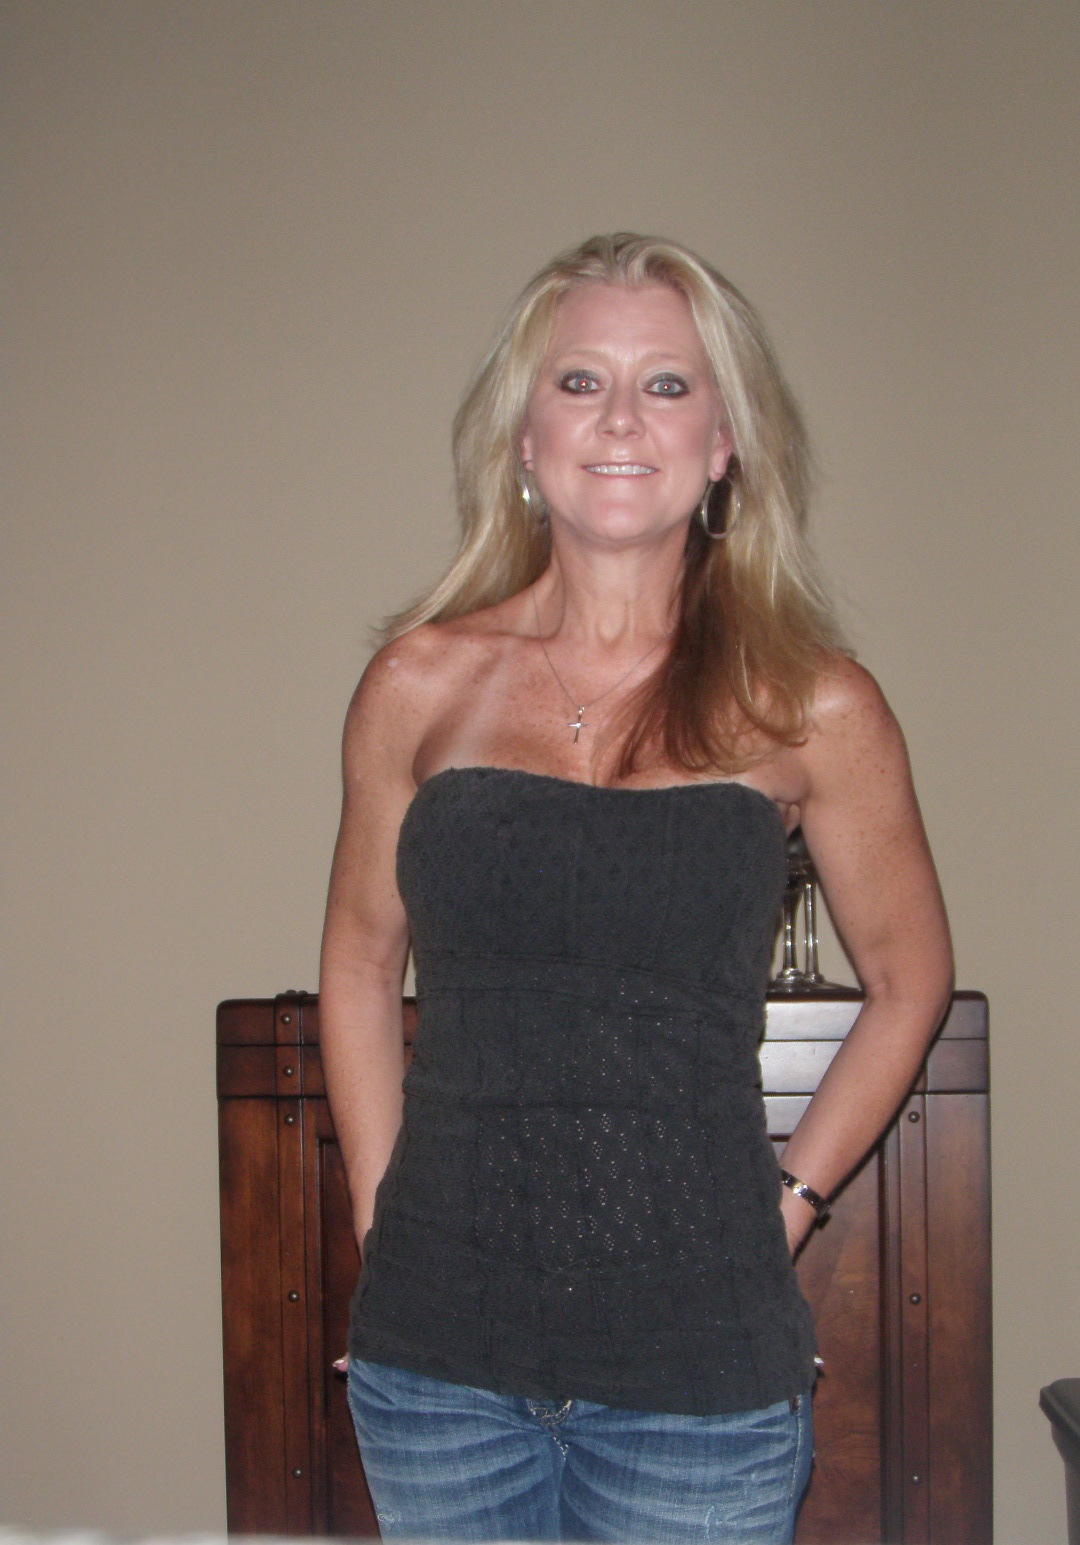 single women over 50 in jeffersonton Dating blog for men and women over 50  if you are in a relationship with someone, you're over 50 and single, and you've been dating for a while, know the .